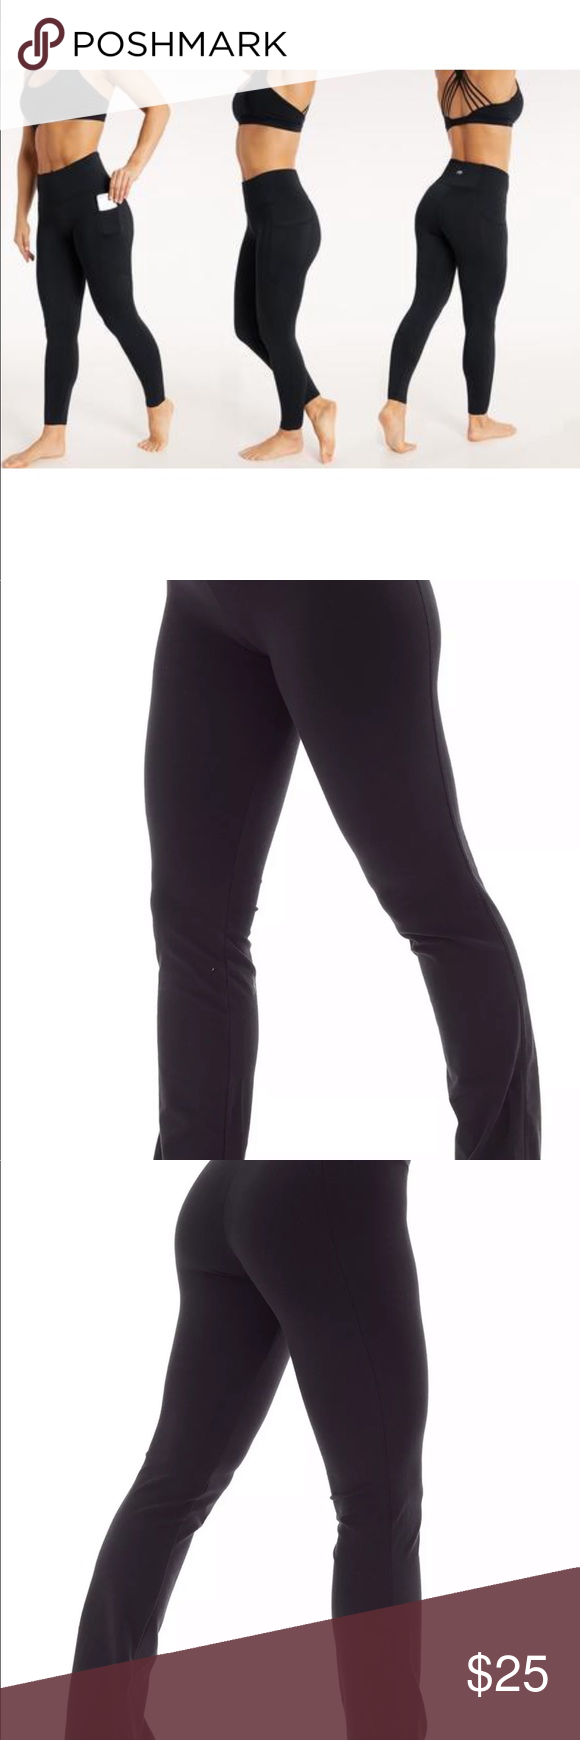 d4dbde902f3d64 Bally total fitness tummy control yoga pants Bally Total Fitness Womens 18%  spandex Tummy Control